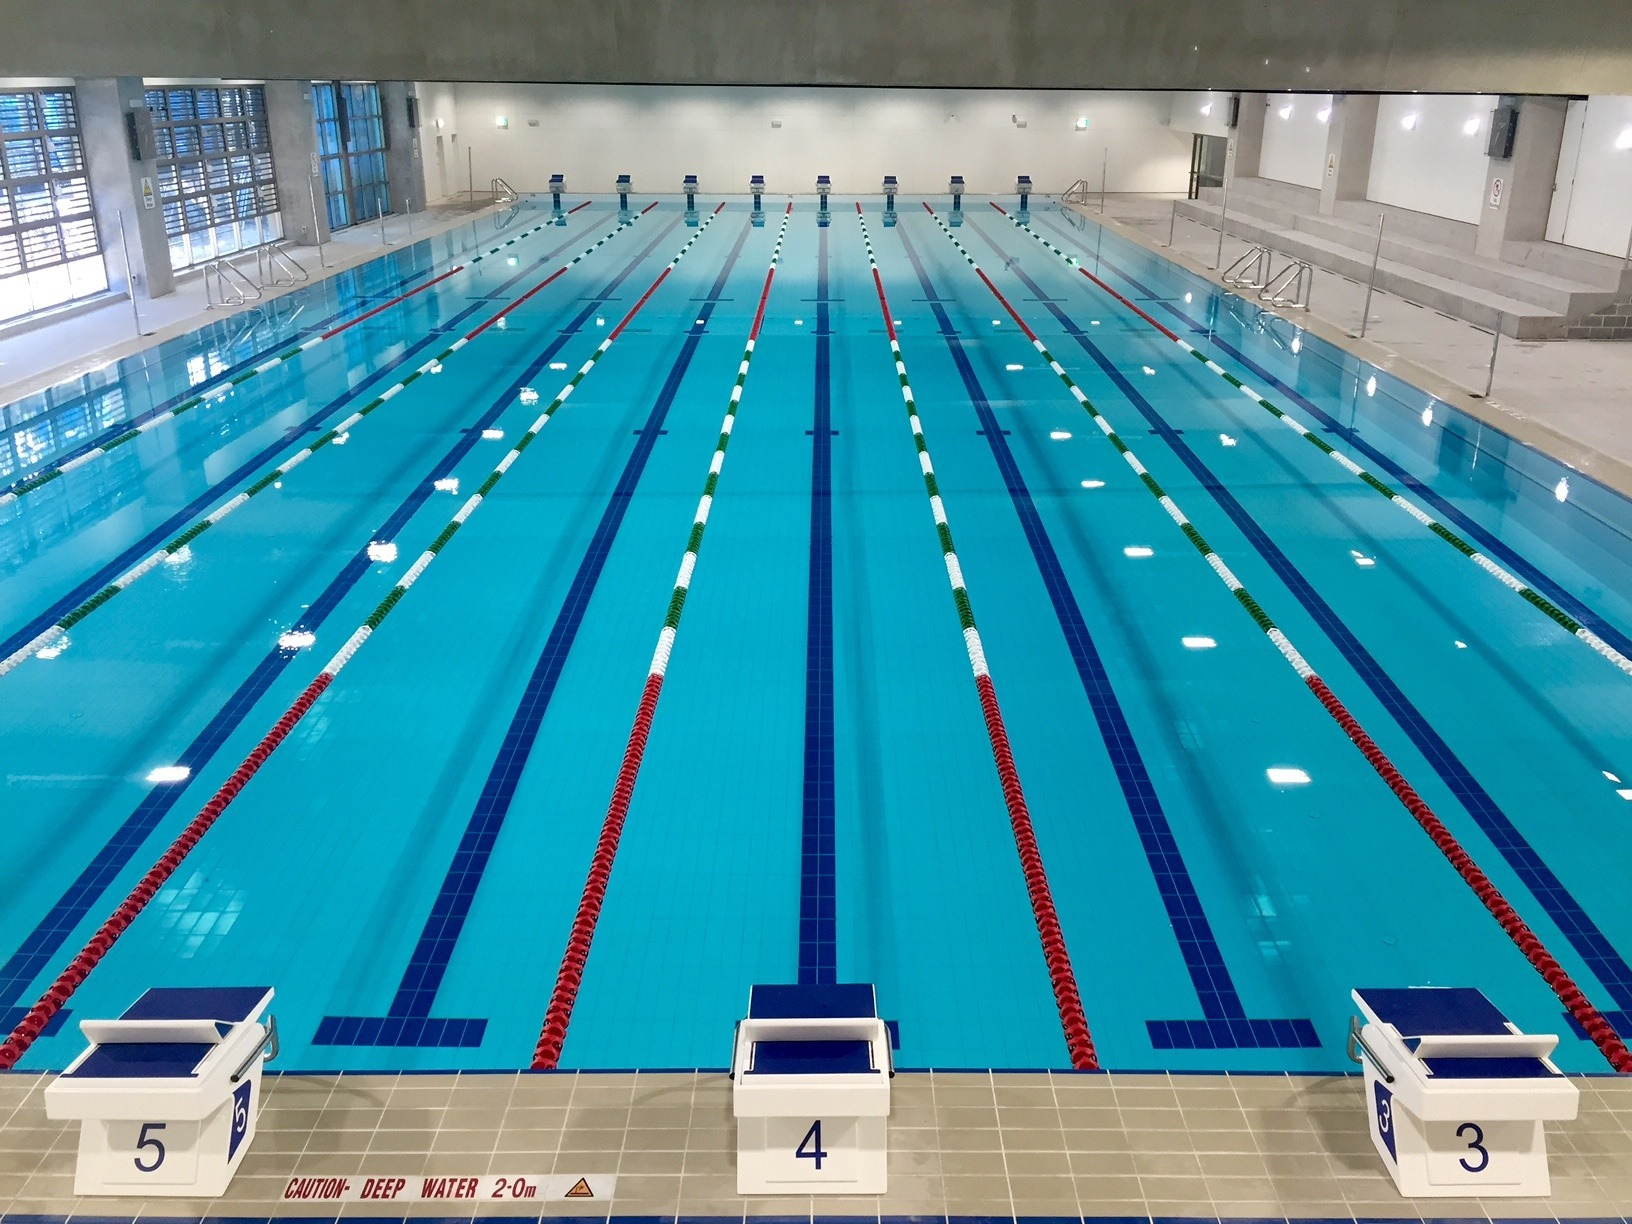 Cutting edge 50m pool opens at trinity grammar australia for Swimming pool design jobs